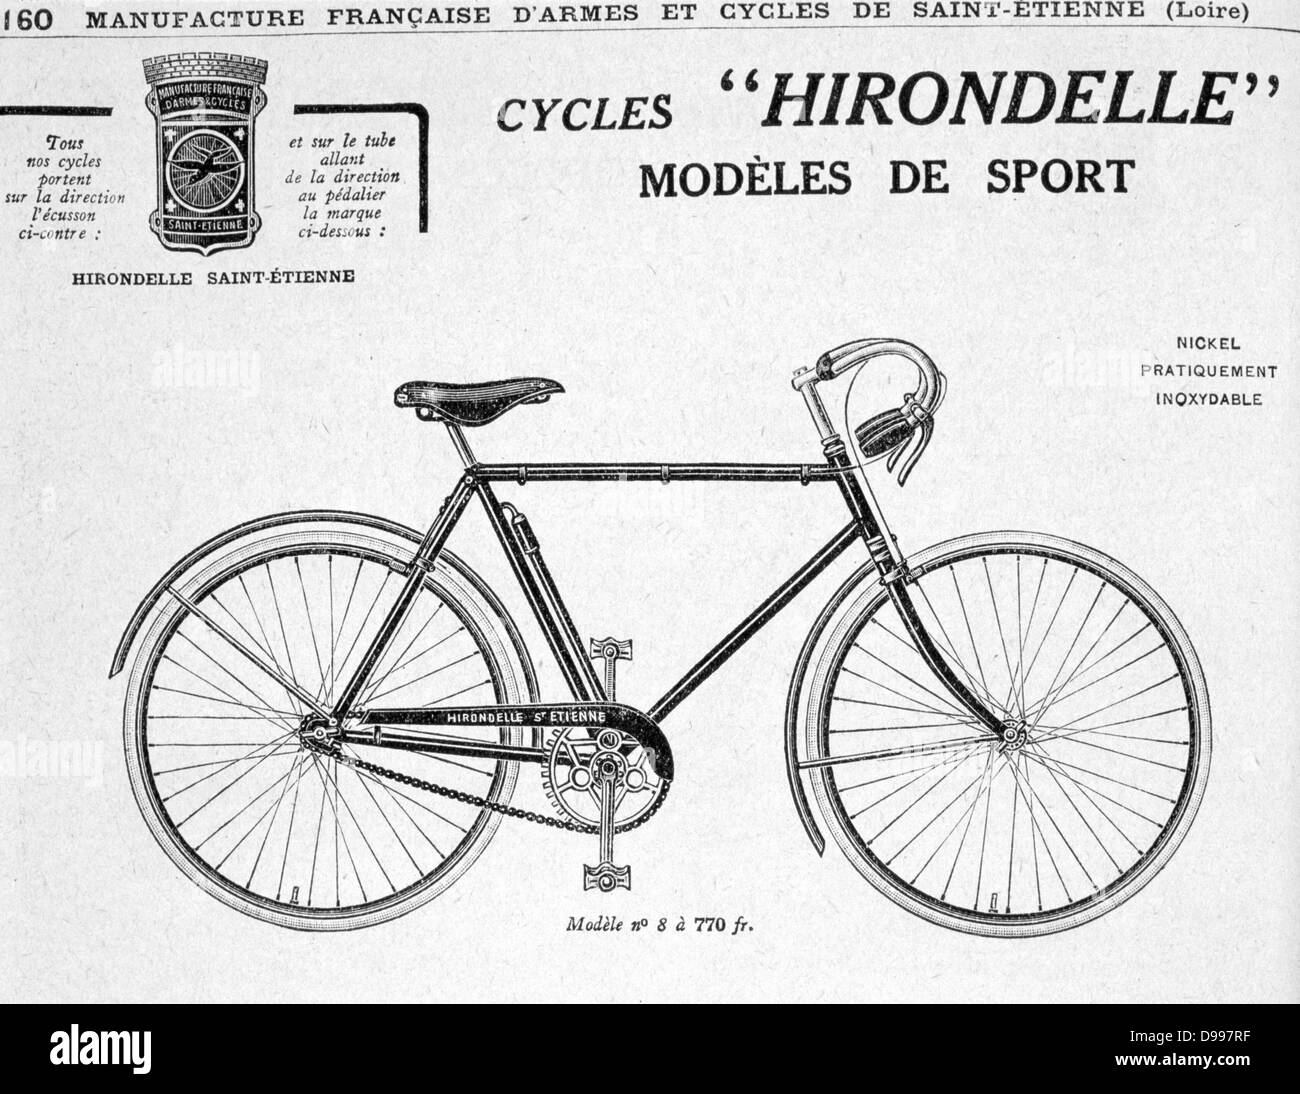 Sports model of a 'Hirondelle' (Swallow) chain-driven 'safety' bicycle from the catalogue of Manufrance - Stock Image